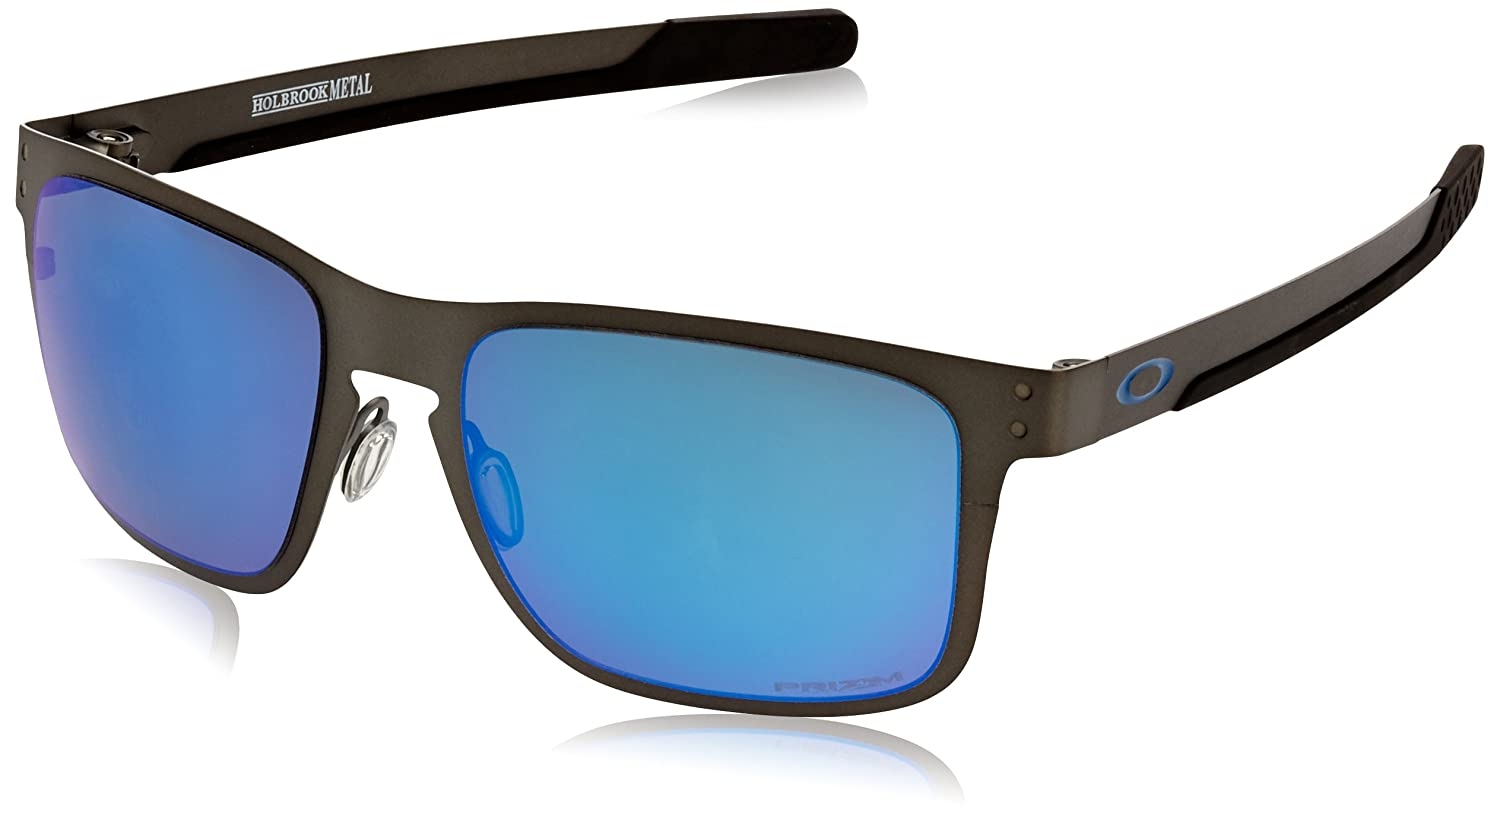 589175d5f39 Oakley Holbrook Metal Polarized Iridium Square Sunglasses